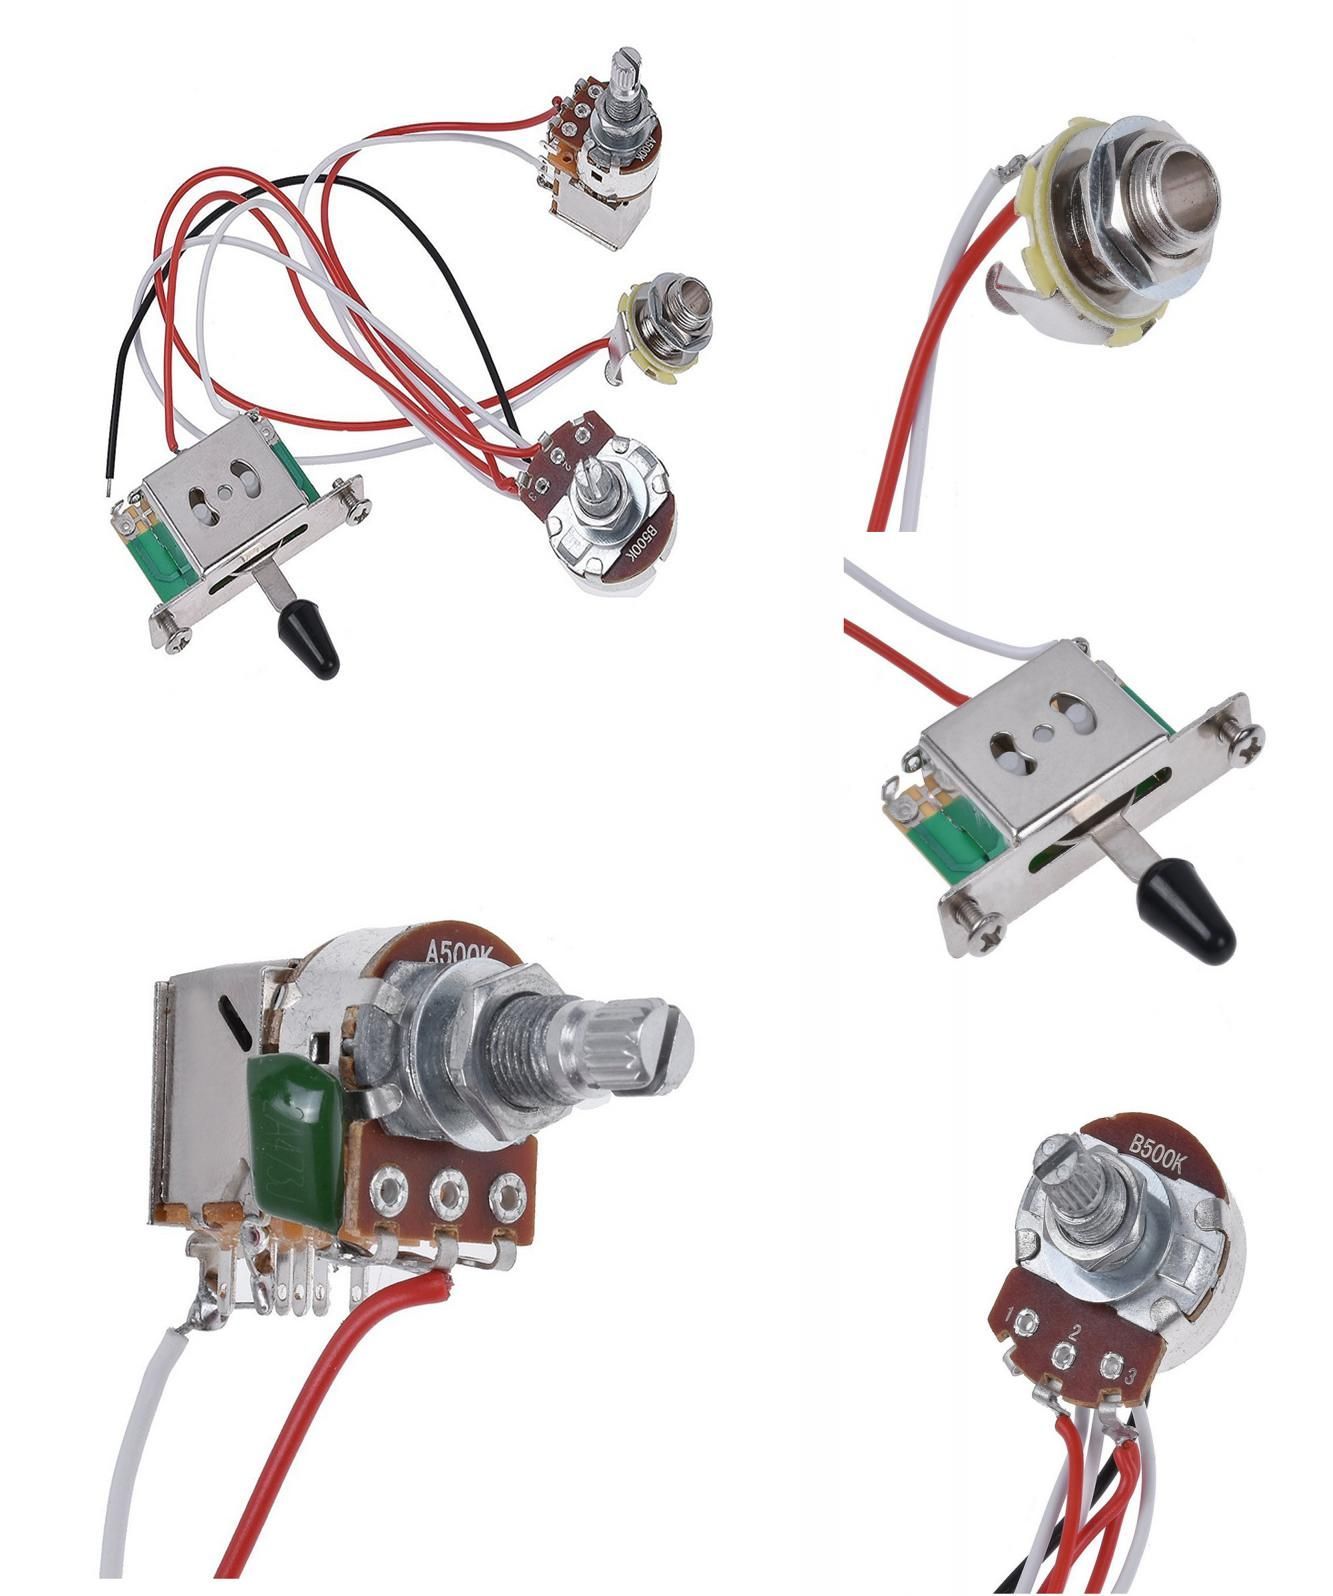 visit to buy electric guitar wiring harness prewired kit 3 way toggle switch 1 [ 1333 x 1596 Pixel ]